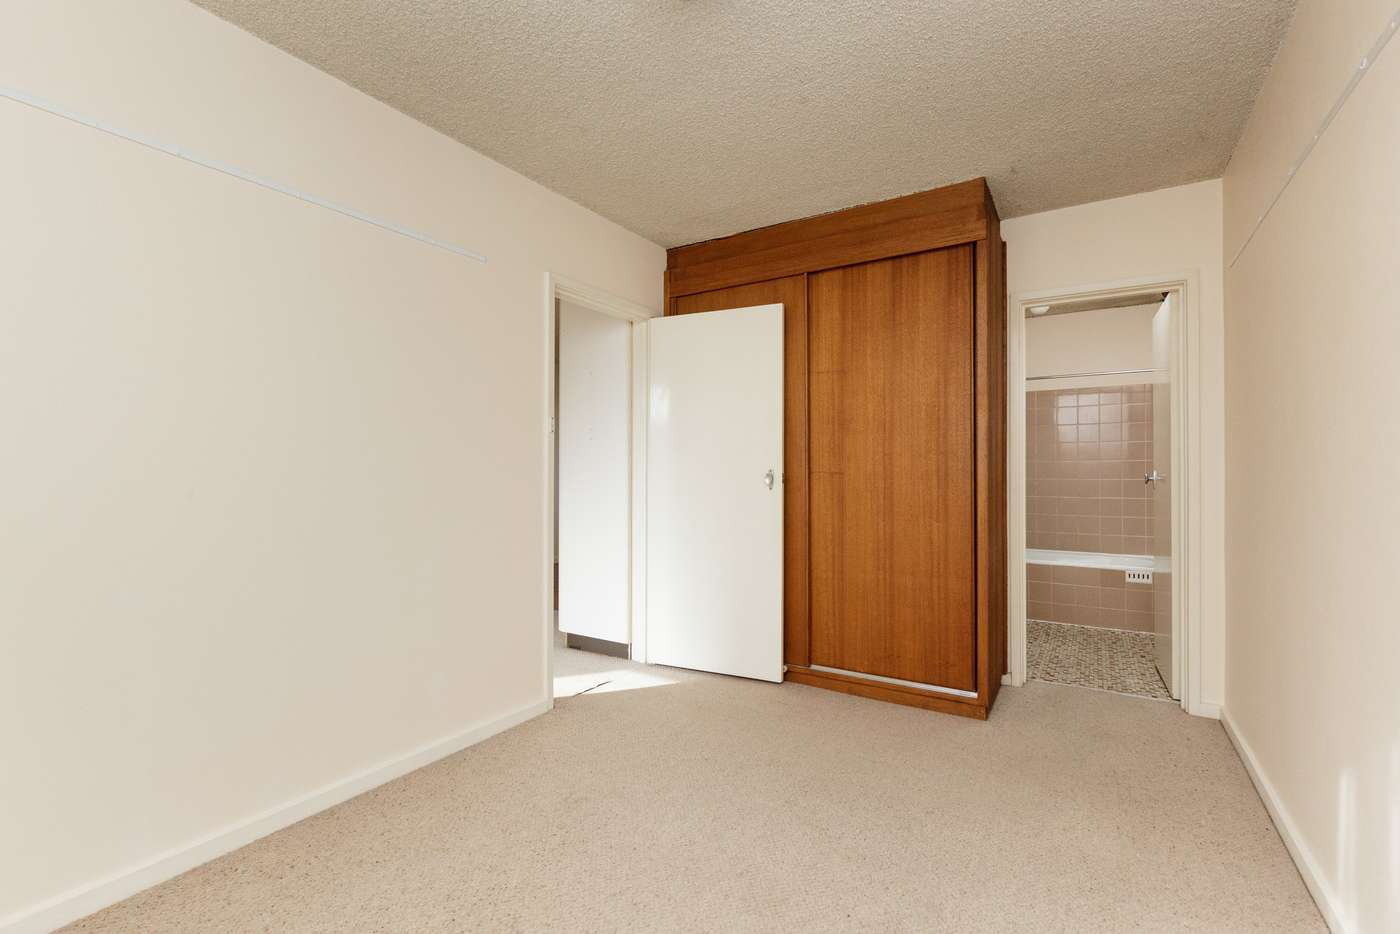 Sixth view of Homely apartment listing, 32/3 Waddell Place, Curtin ACT 2605